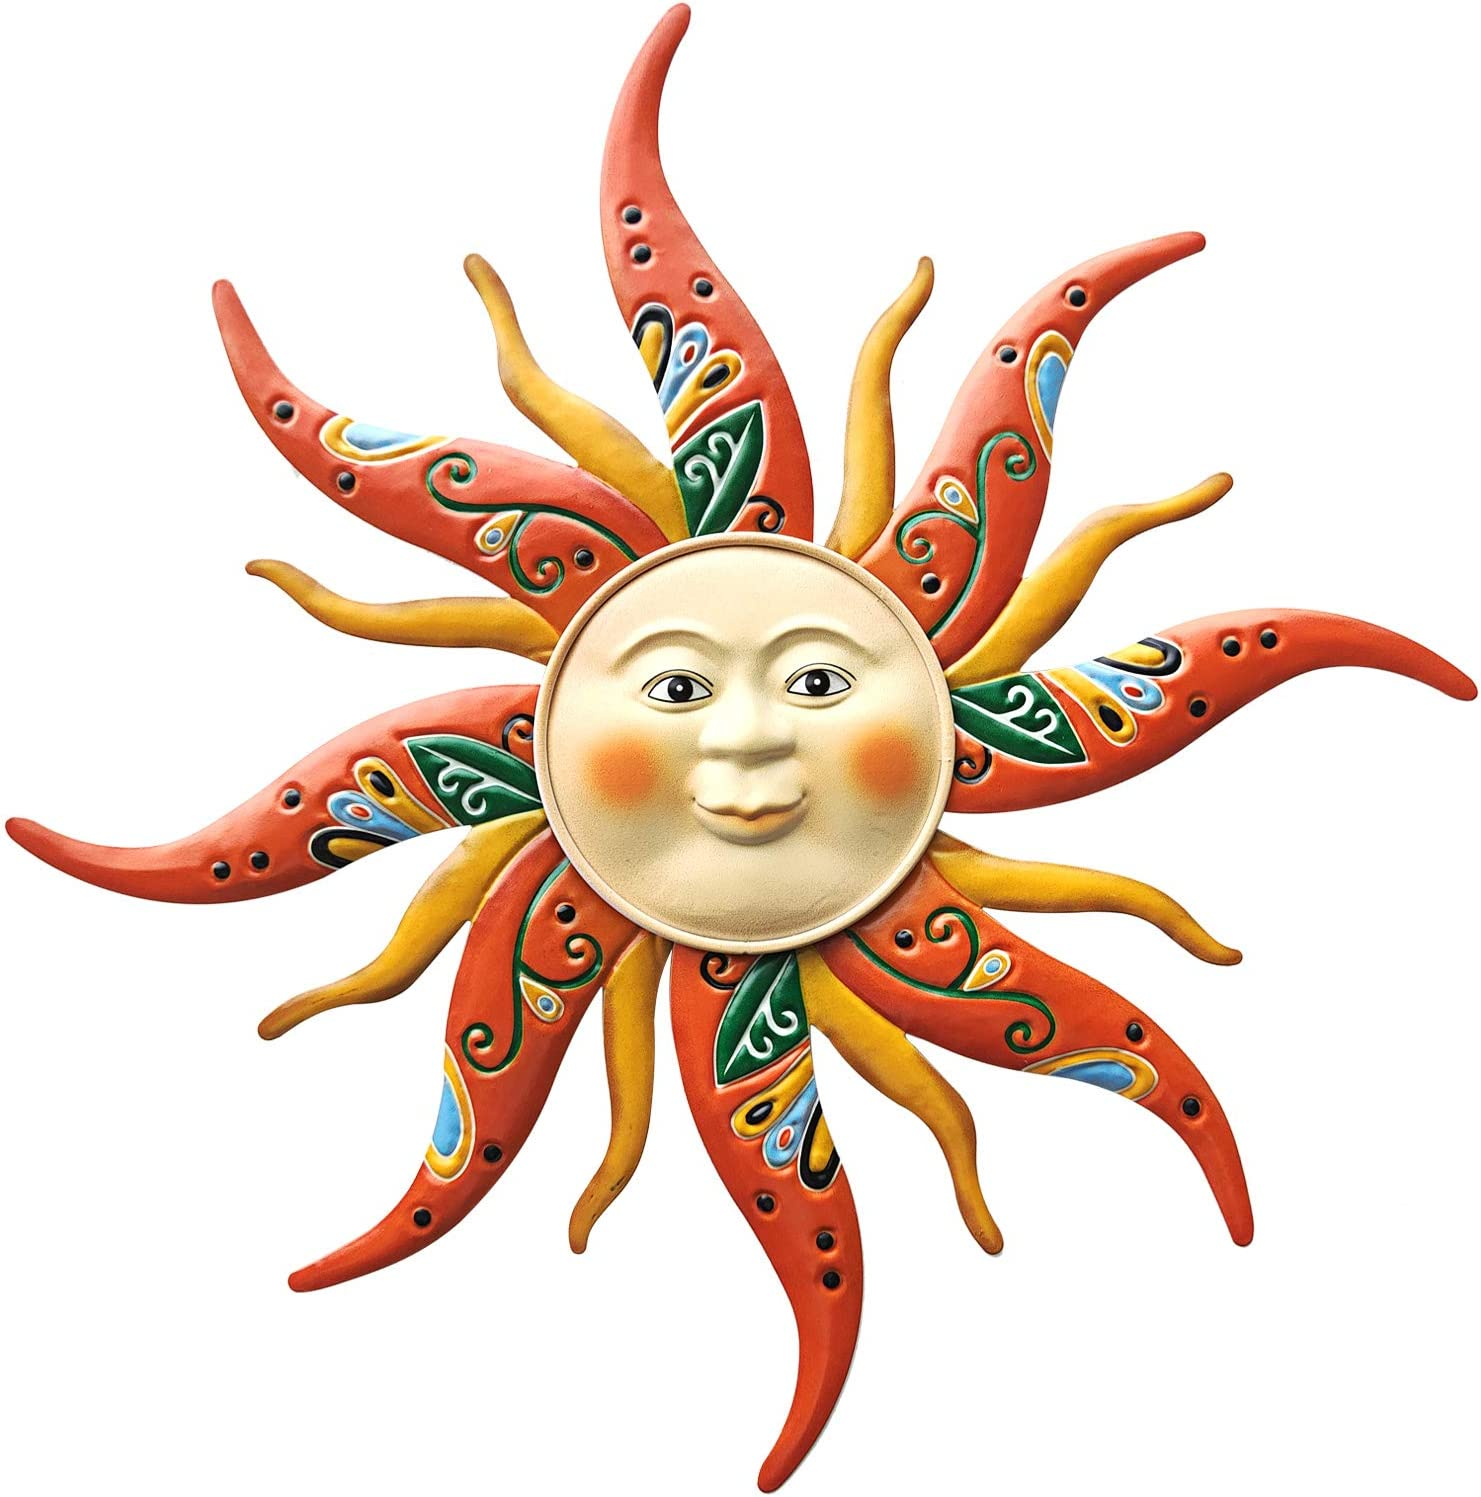 VOKPROOF Metal Sun Wall Art Decor - 14.9 Inch Hand-Painted Sun Wall Sculptures for Hanging Indoor and Outdoor Home Garden Decoration